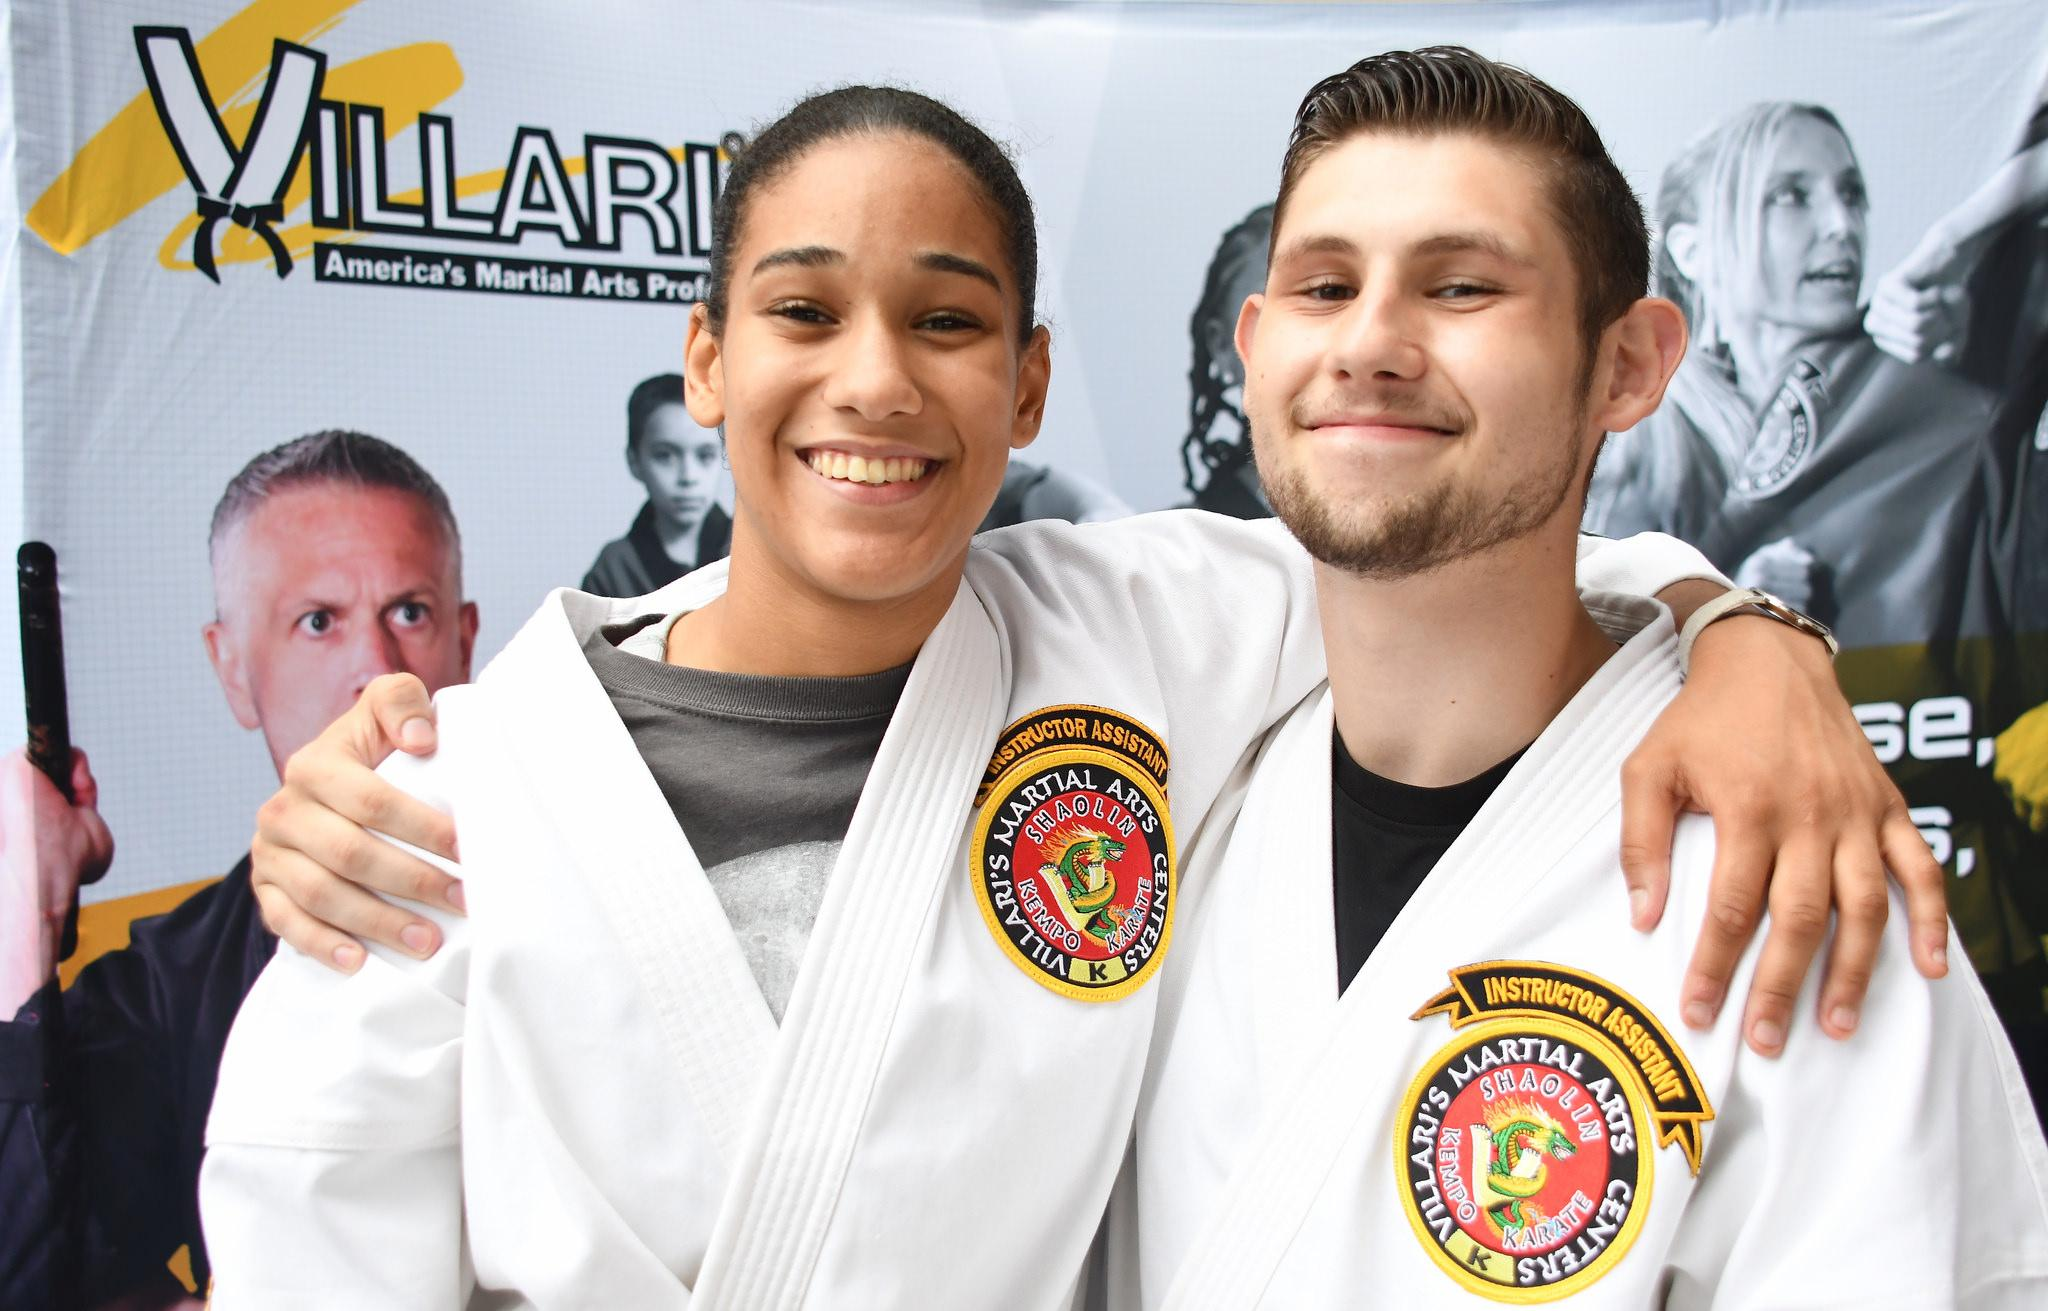 Opinion, Ls women who know martial arts agree, the